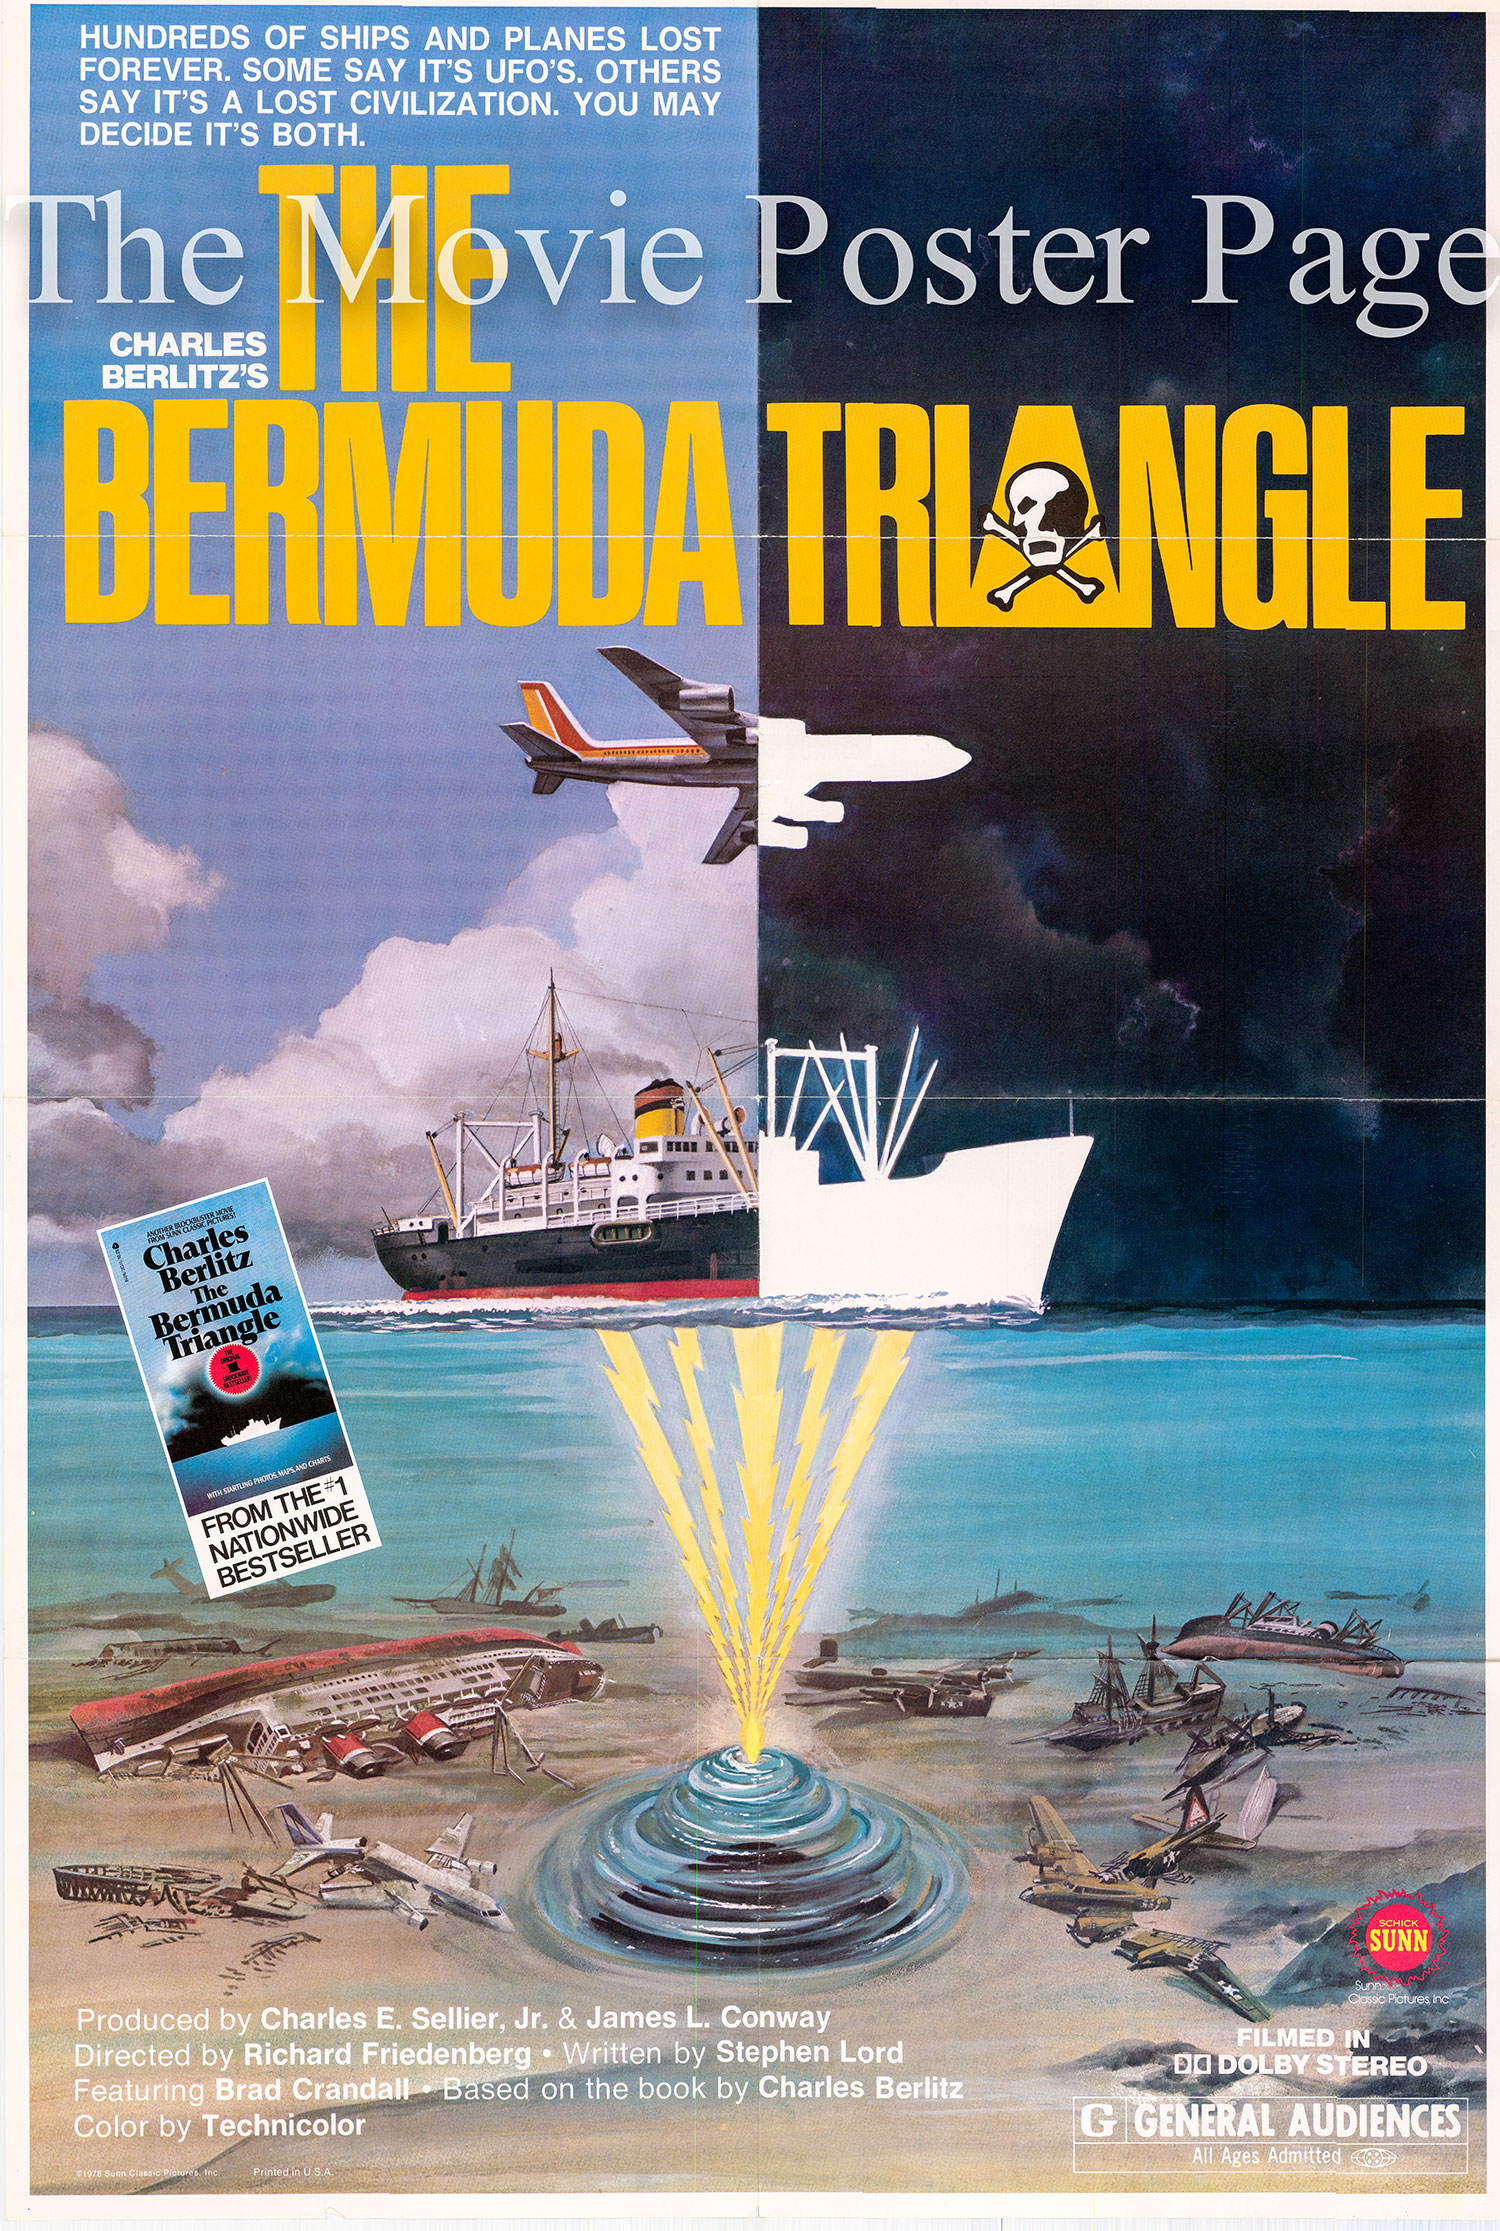 Pictured is a US one-sheet poster for the 1979 Richard Friedenberg film The Bermuda Triangle narrated by Brad Crandall.